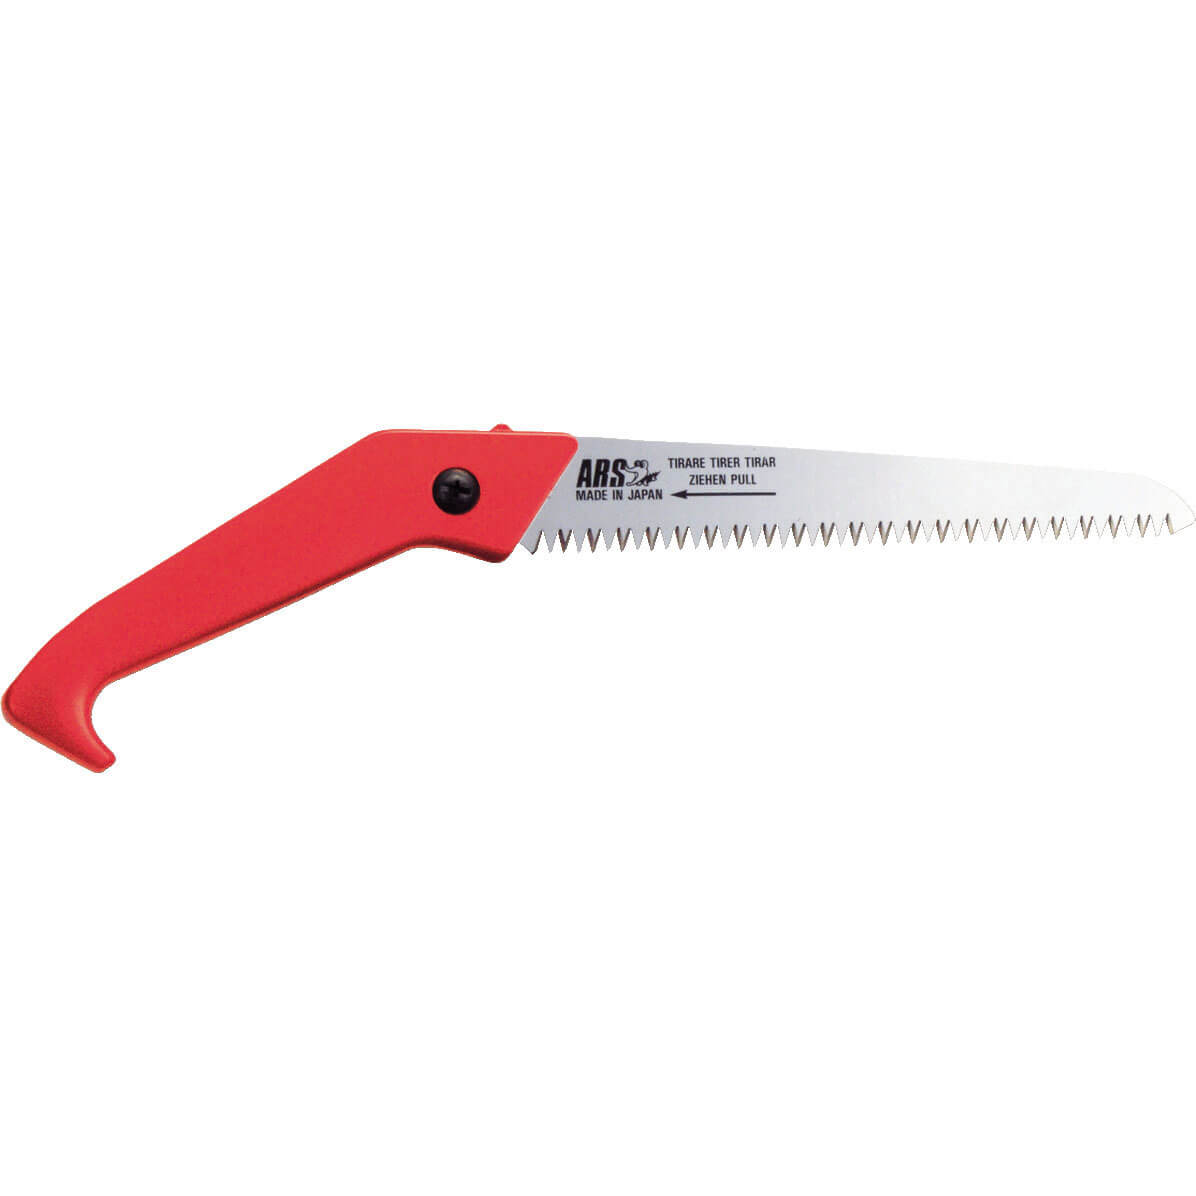 ARS CAM-18LN Pruning Saw with Sheath & 180mm Turbocut Straight Blade Overall 336mm Long